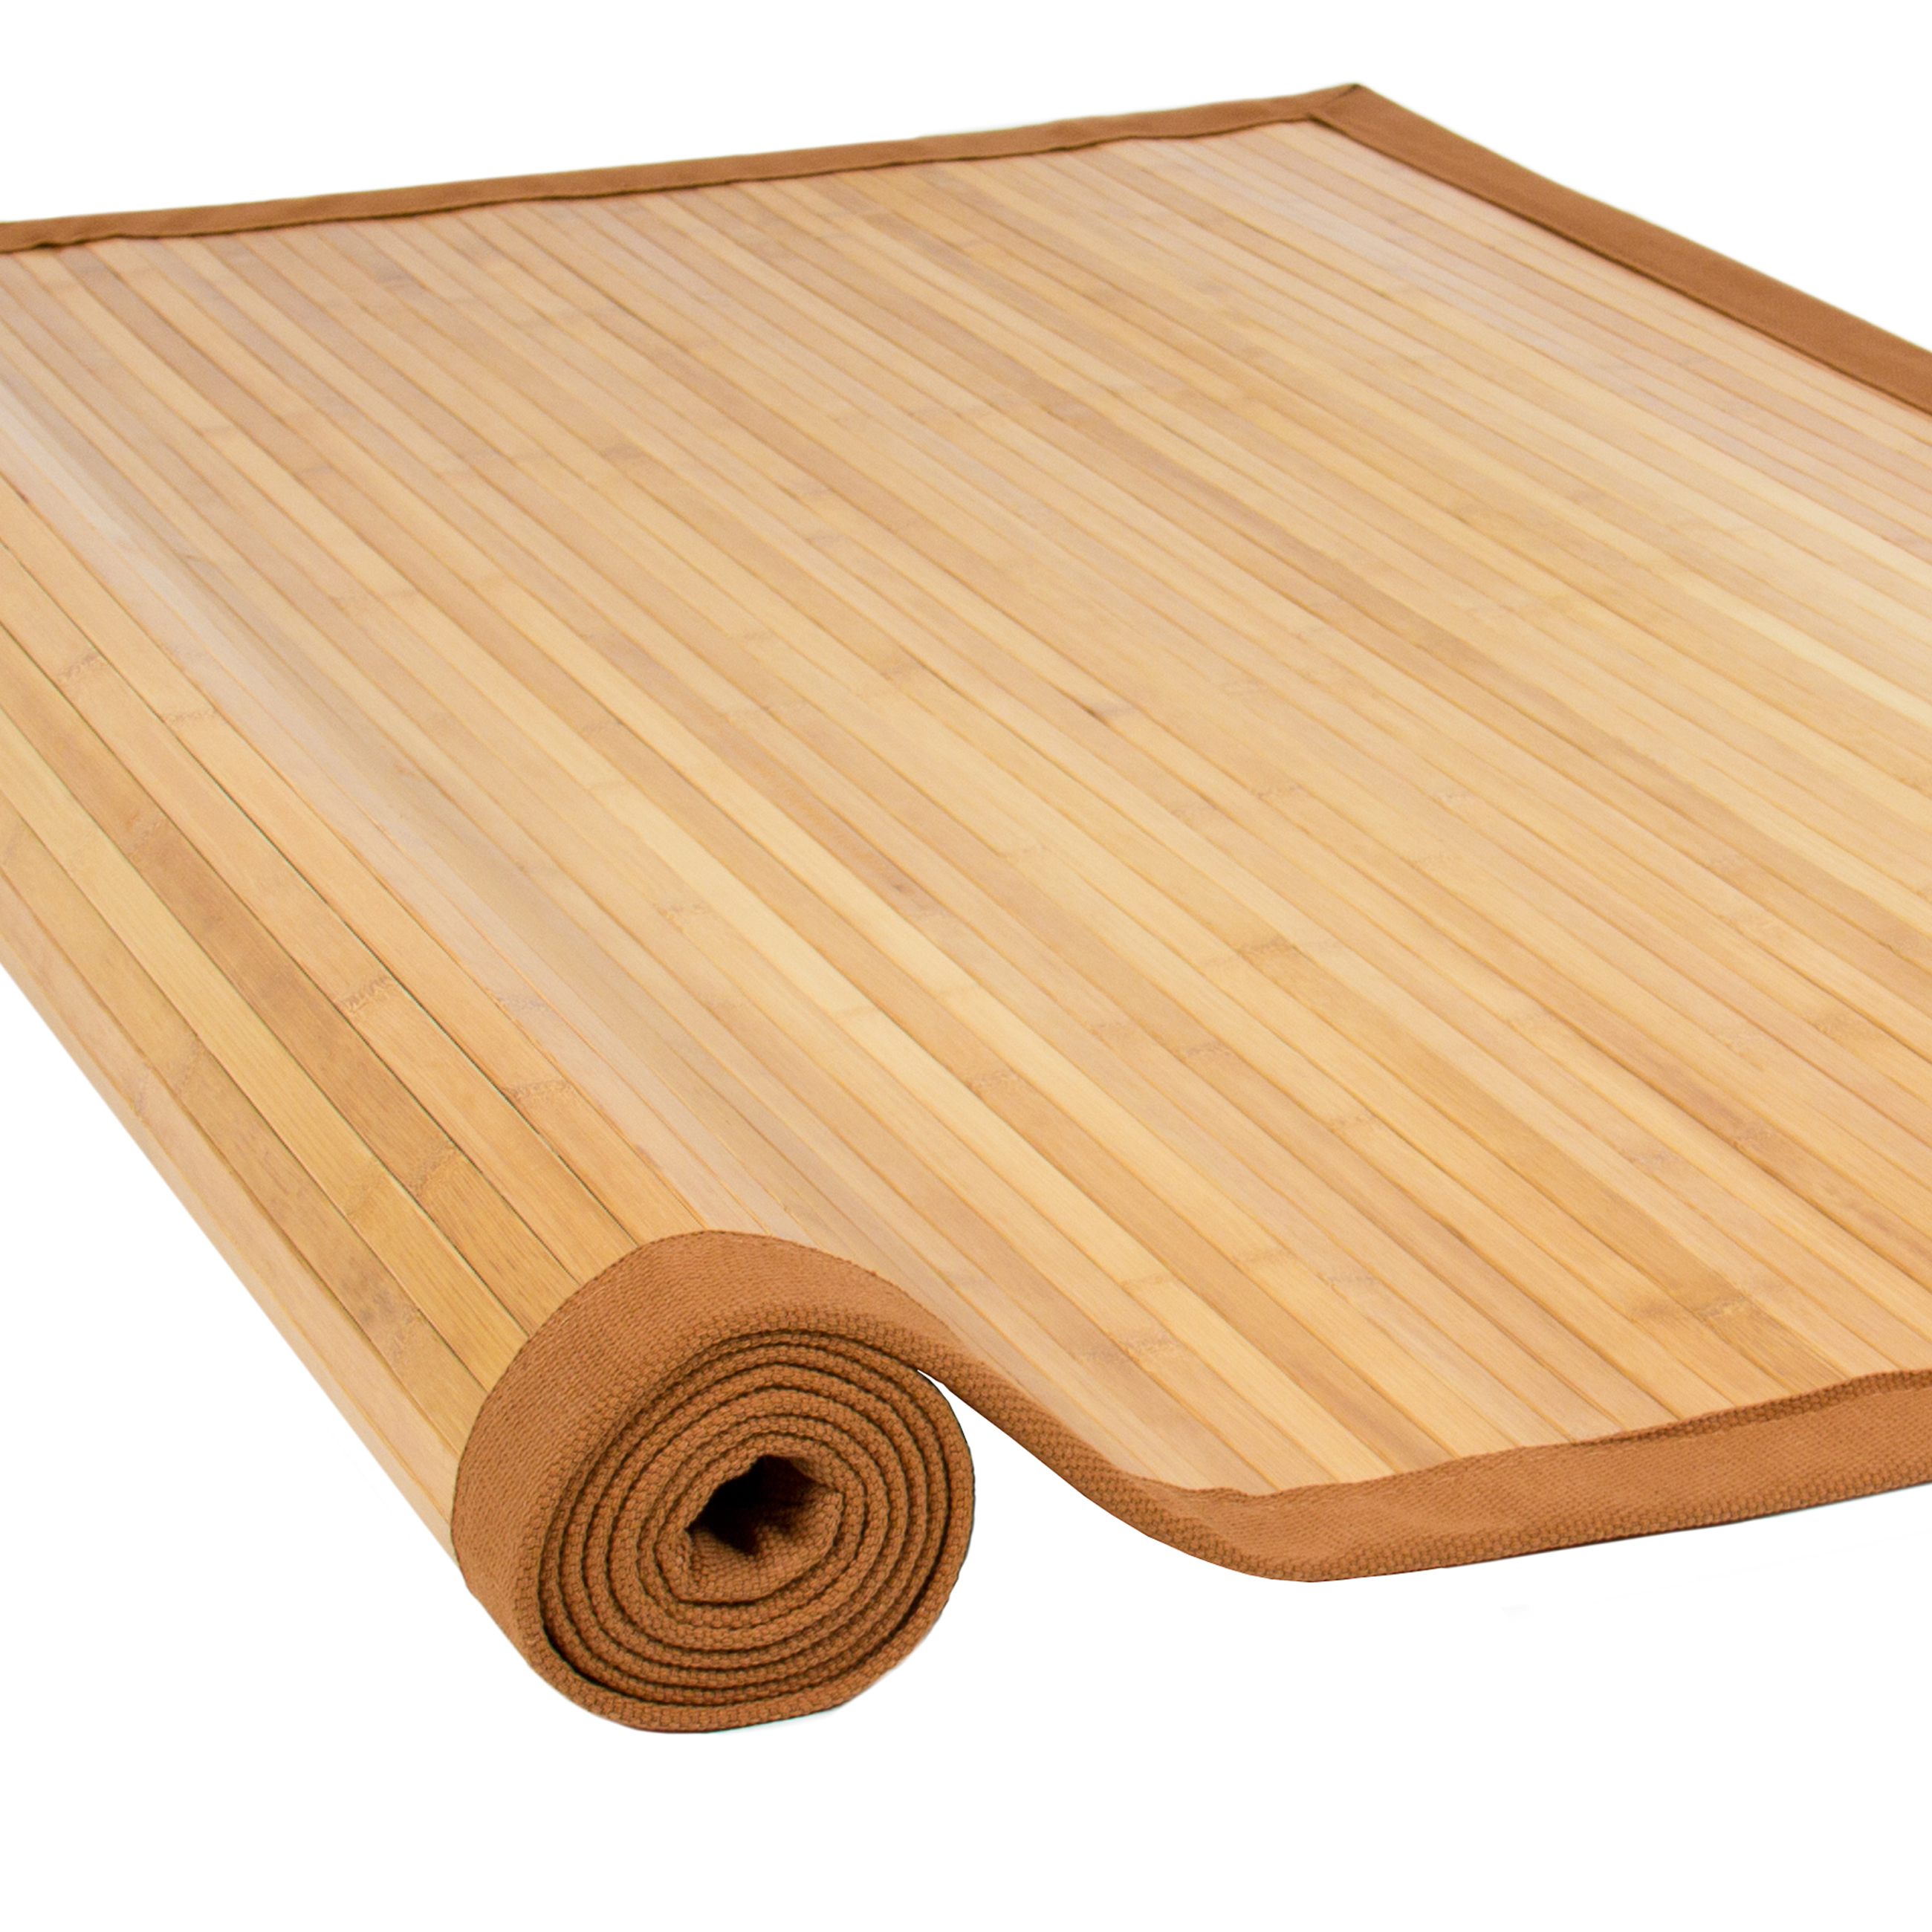 Bamboo rugs best choice products bamboo area rug carpet indoor 5u0027 x 8u0027 100% natural OIXRCPZ